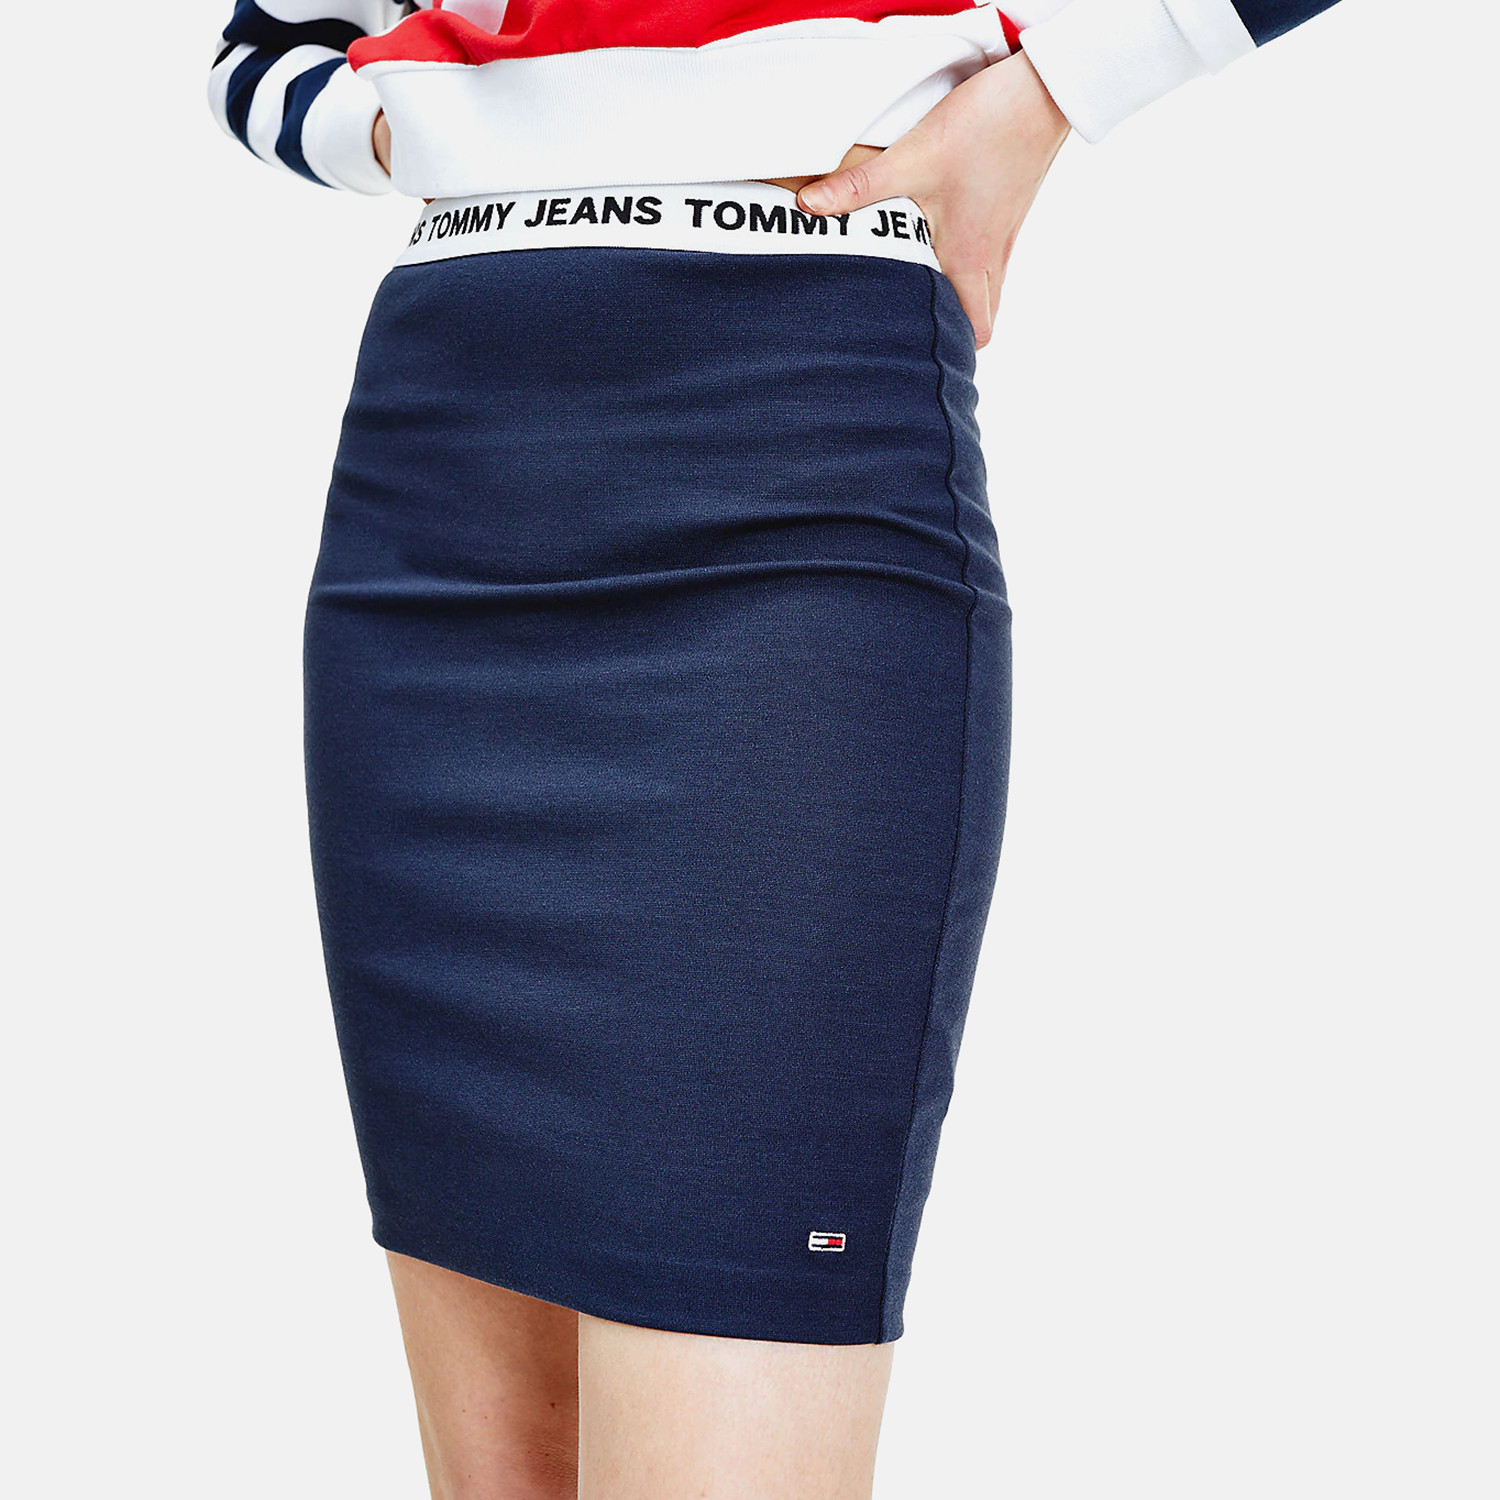 Tommy Jeans Bodycon Skirt (9000063141_45076)